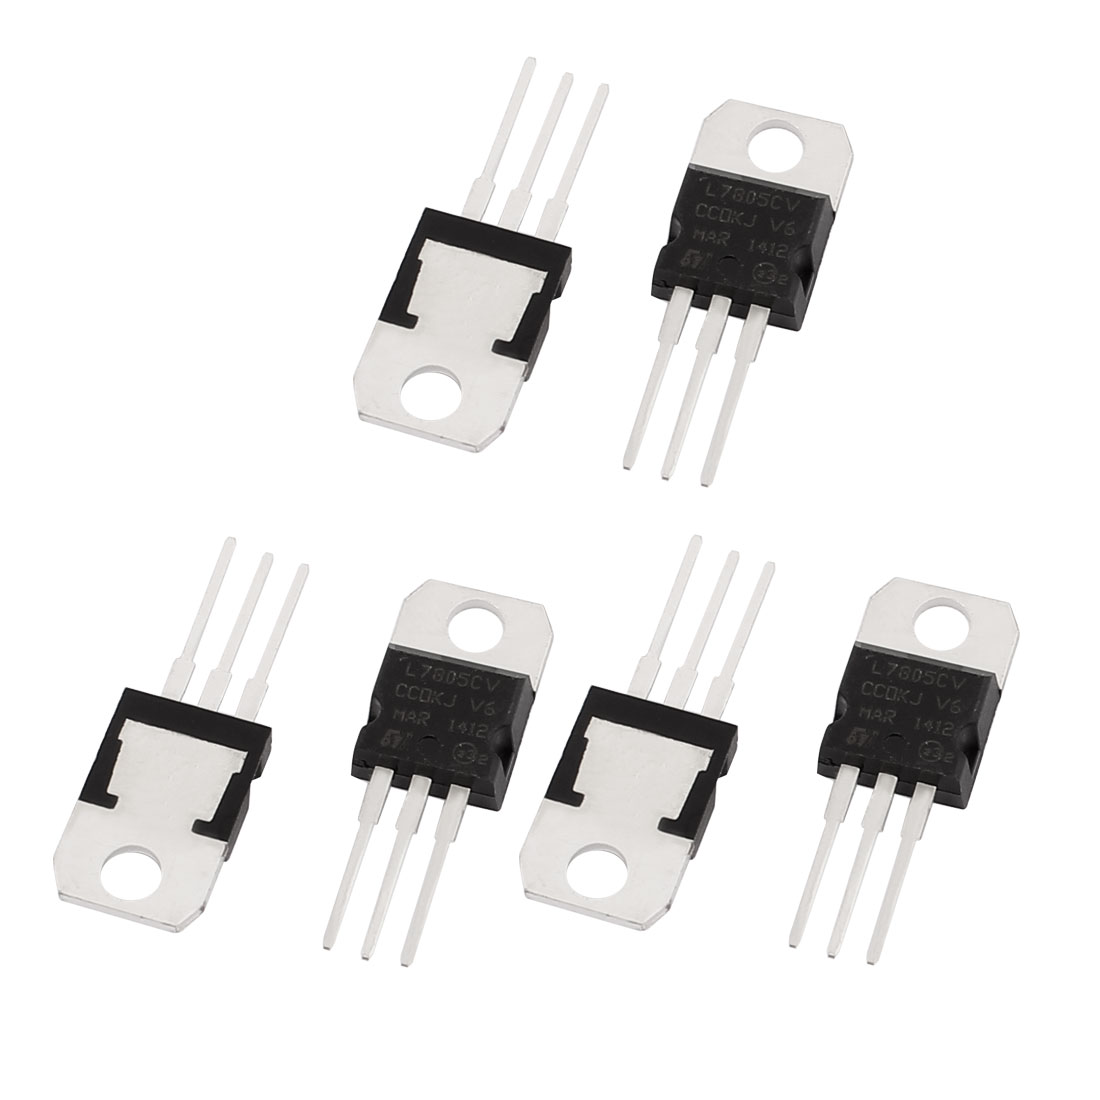 6 Pcs 5V 1A 3 Pin Terminals 7805 Positive Voltage Regulator TO-220